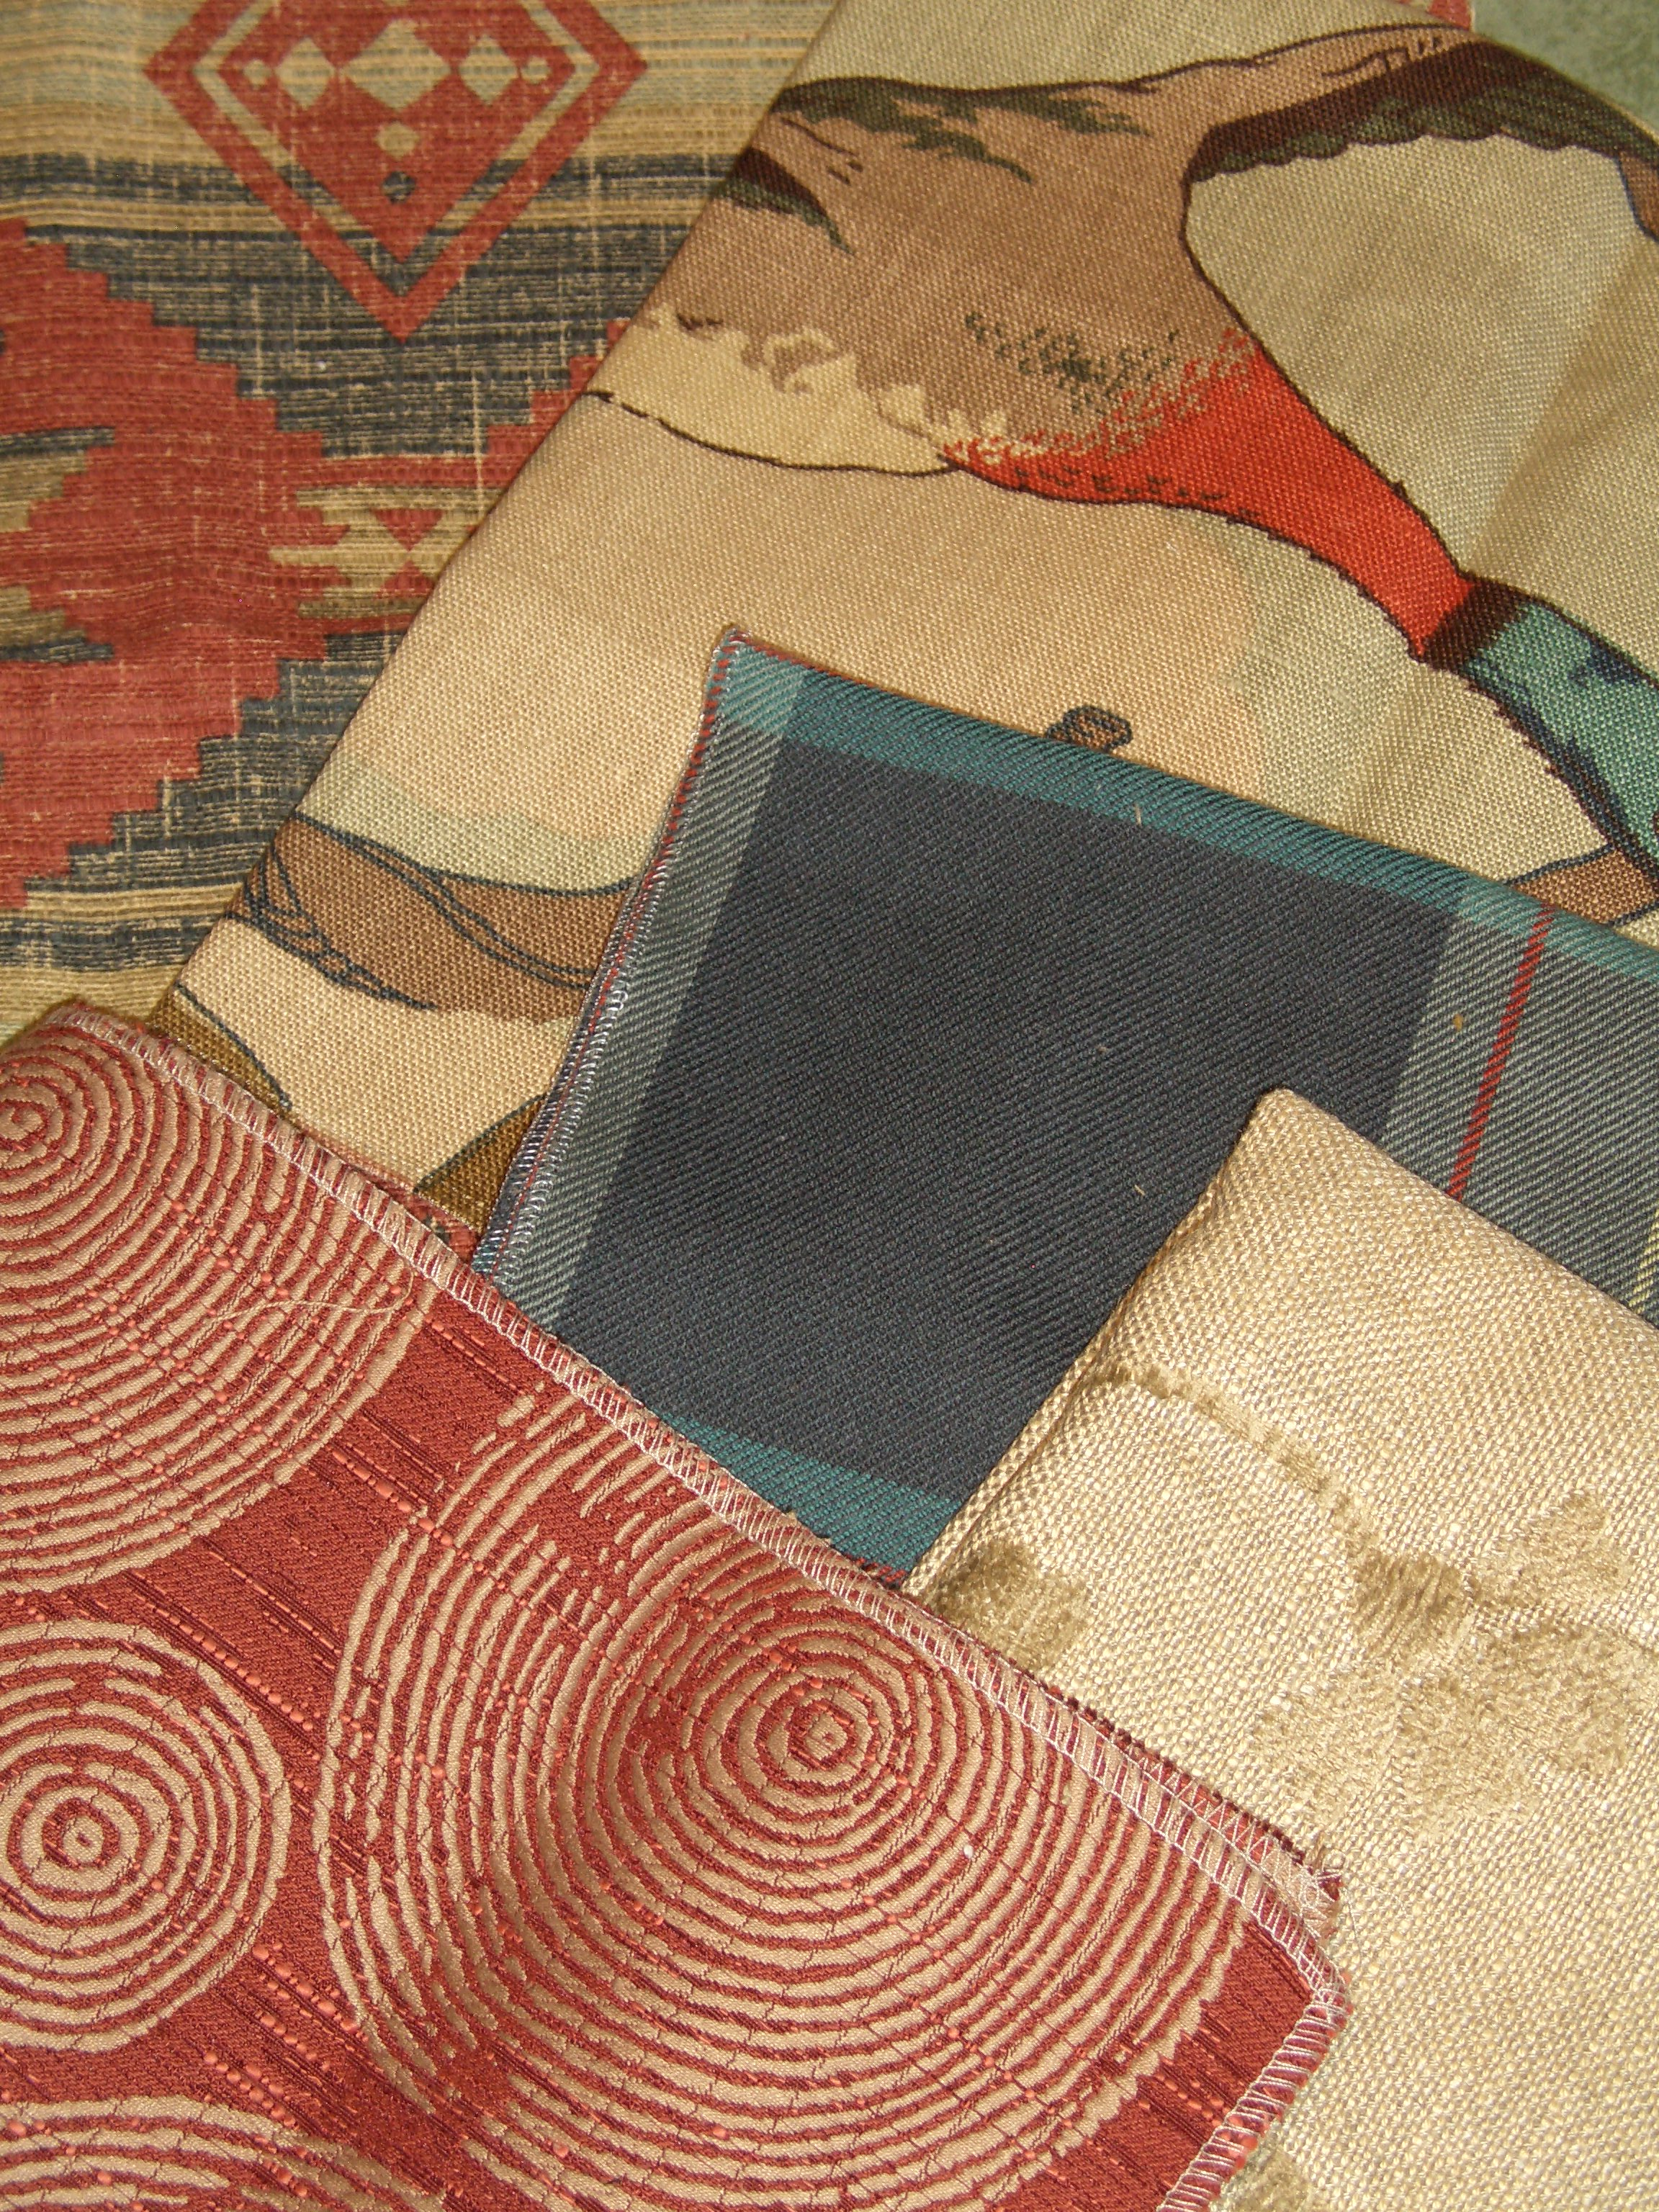 Rustic Fabrics Cabins Lodges Rustic Upholstery Curtains